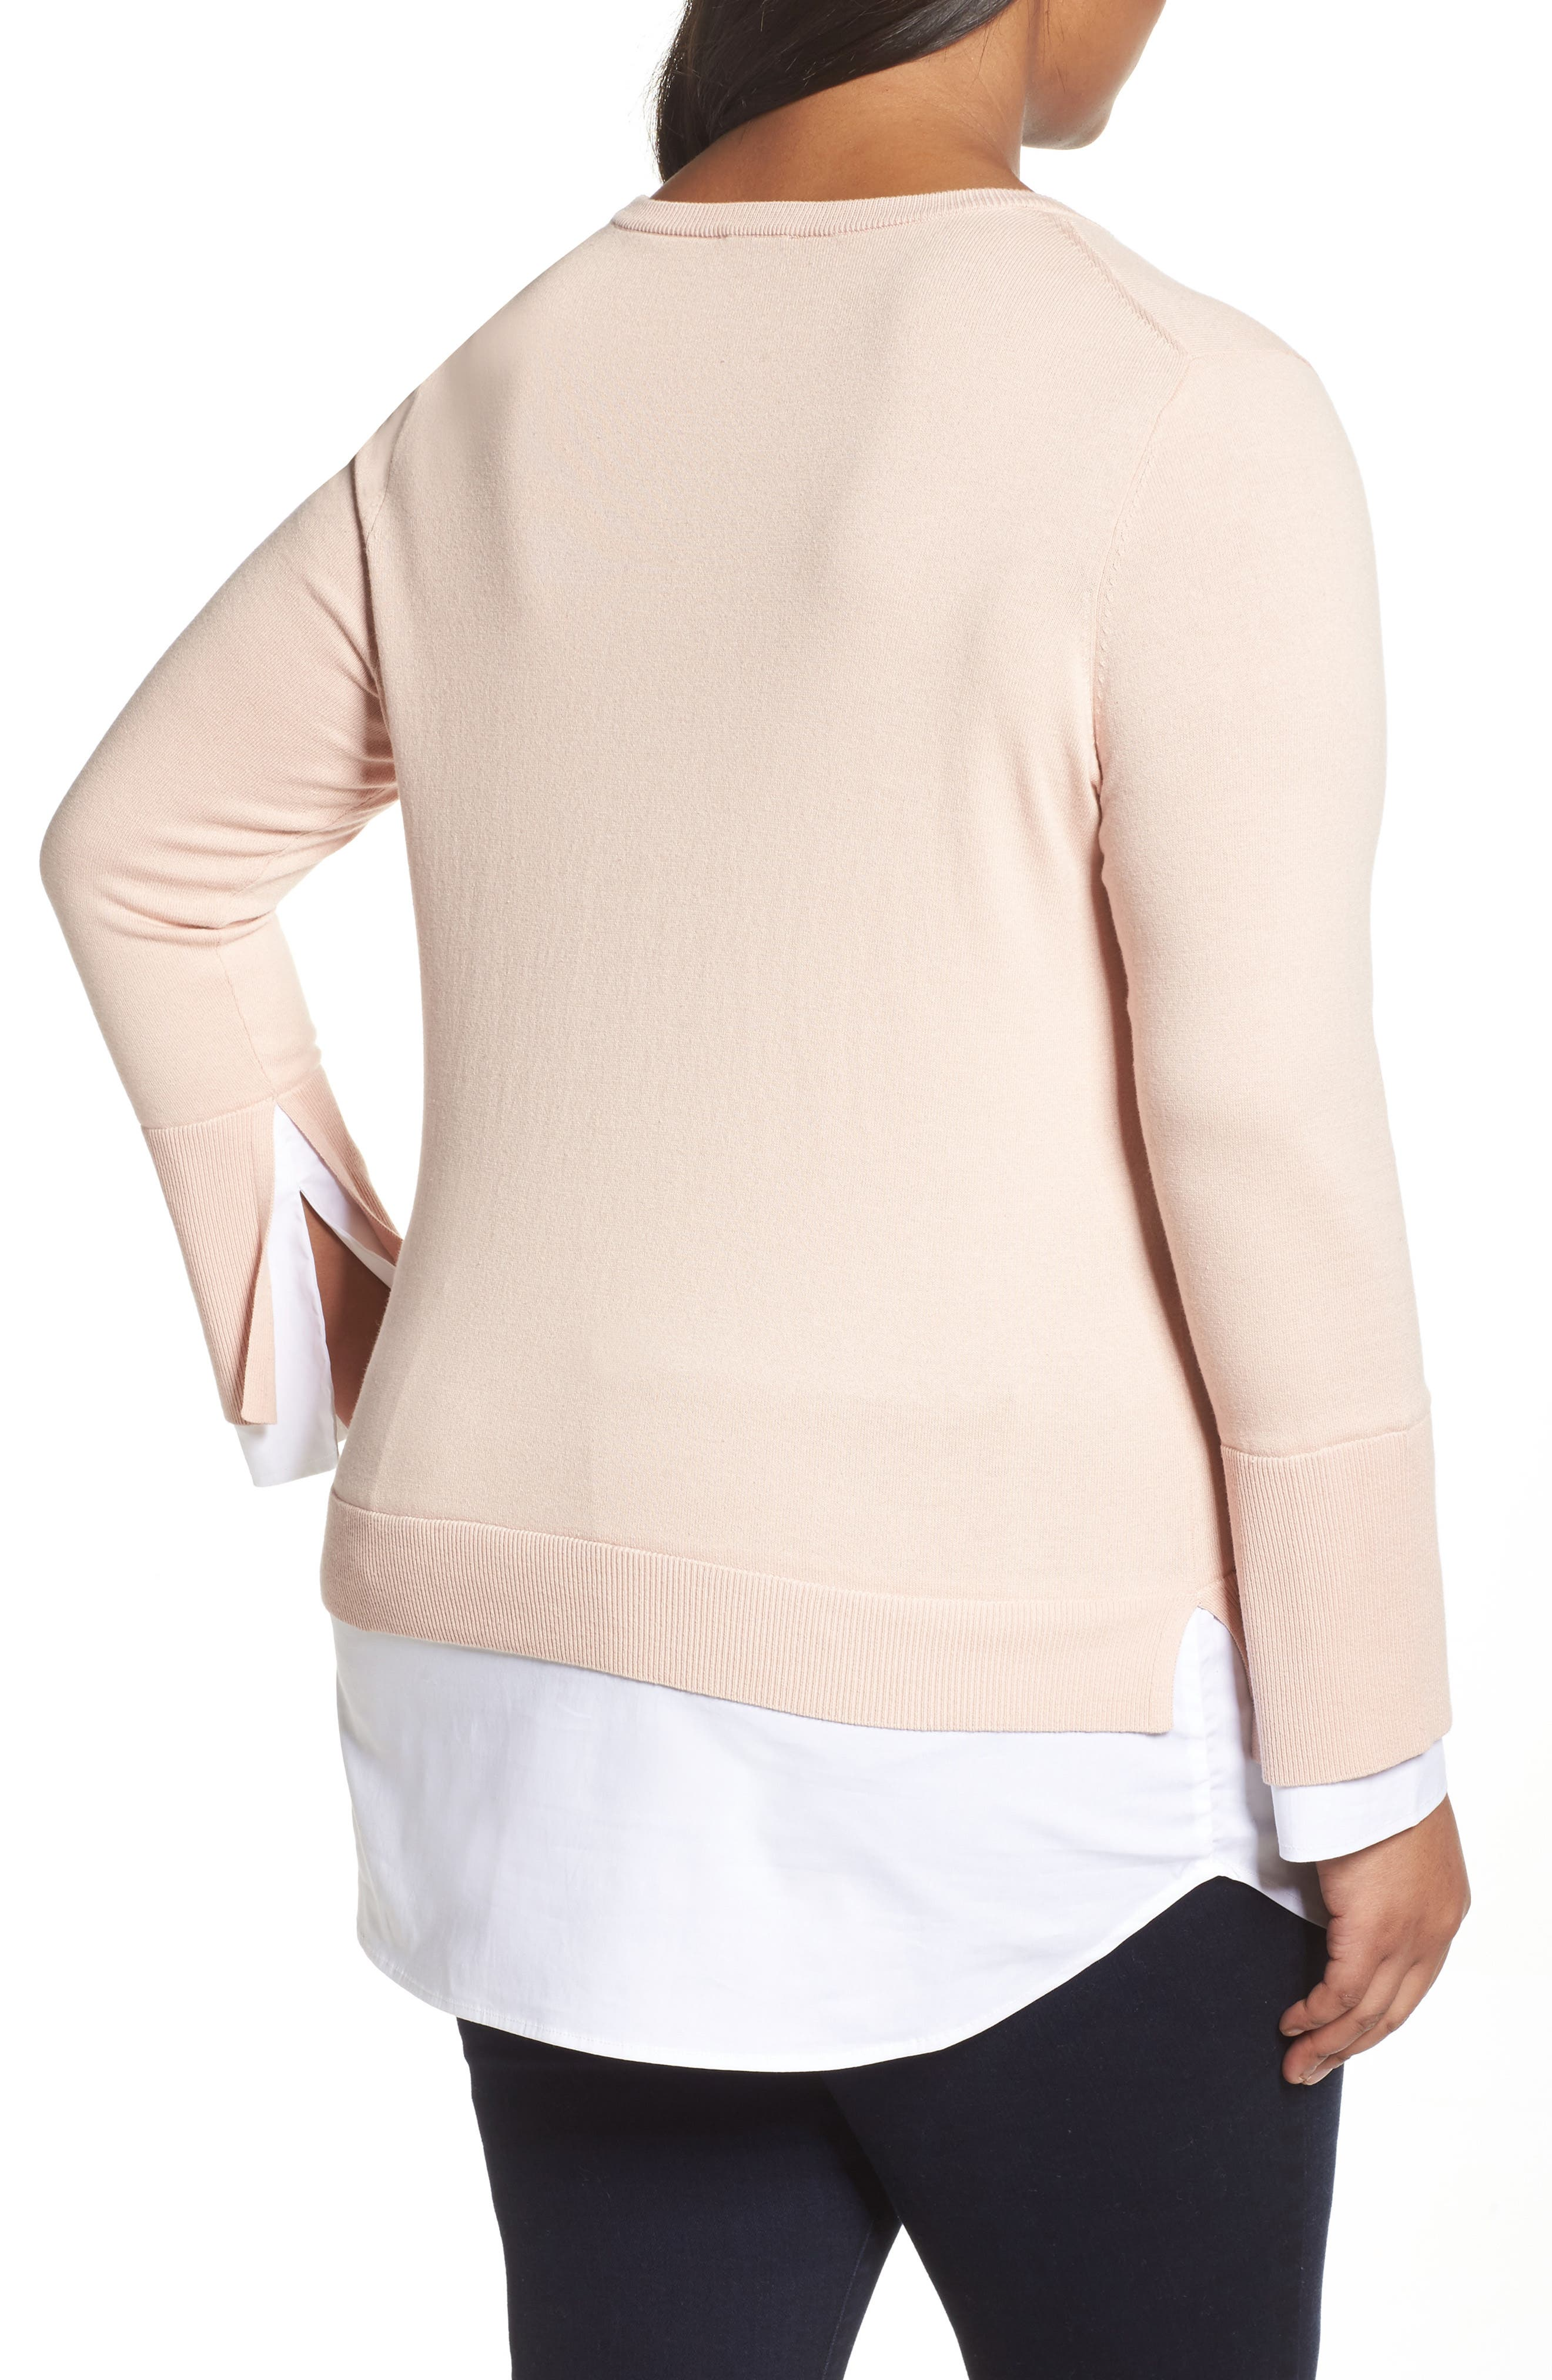 Layered Look Sweater,                             Alternate thumbnail 2, color,                             Rose Buff